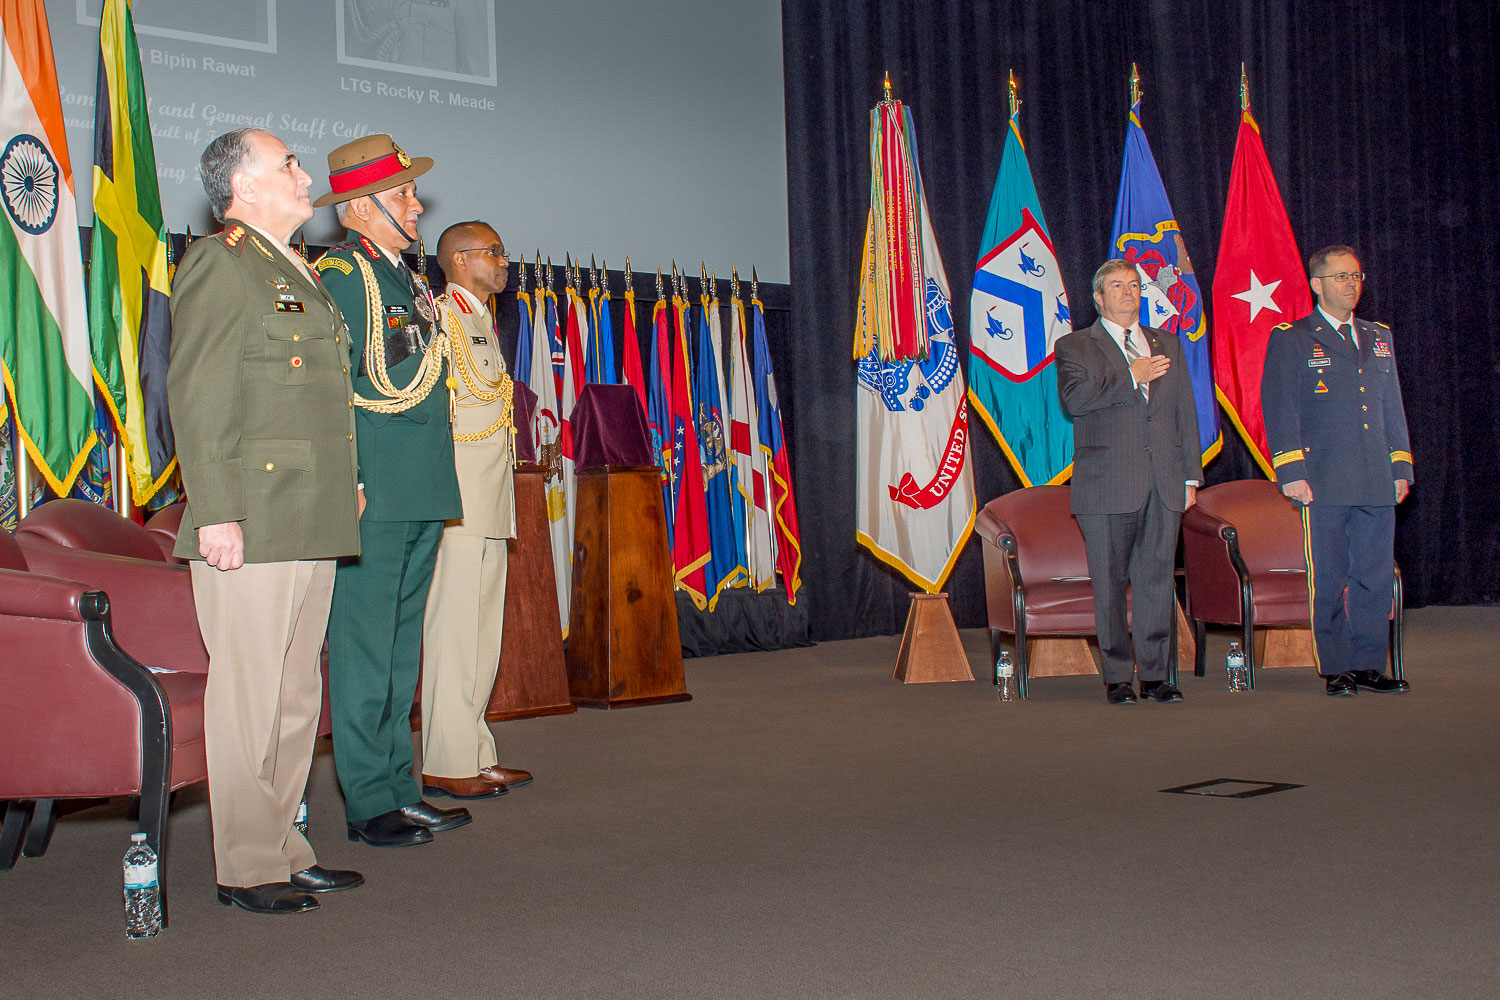 Command and General Staff College International Hall of Fame inductees, Gen. Bari del Valle Sosa, chief of the Joint Chiefs of Staff of the Armed Forces of Argentina, CGSC class of 1995; Gen. Bipin Rawat, chief of the Army Staff of the Indian Army, CGSC class of 1997; and Lt. Gen. Rocky Ricardo Meade, chief of Defence Staff, Jamaica Defence Force, CGSC class of 2003; Michael Hockley, CGSC Foundation chair and Civilian Aide to the Secretary of the Army for Eastern Kansas; and Army University Provost/CGSC Deputy Commandant Brig. Gen. Troy Galloway, stand at attention during the opening of the ceremony on April 4, 2019, at the Lewis and Clark Center.